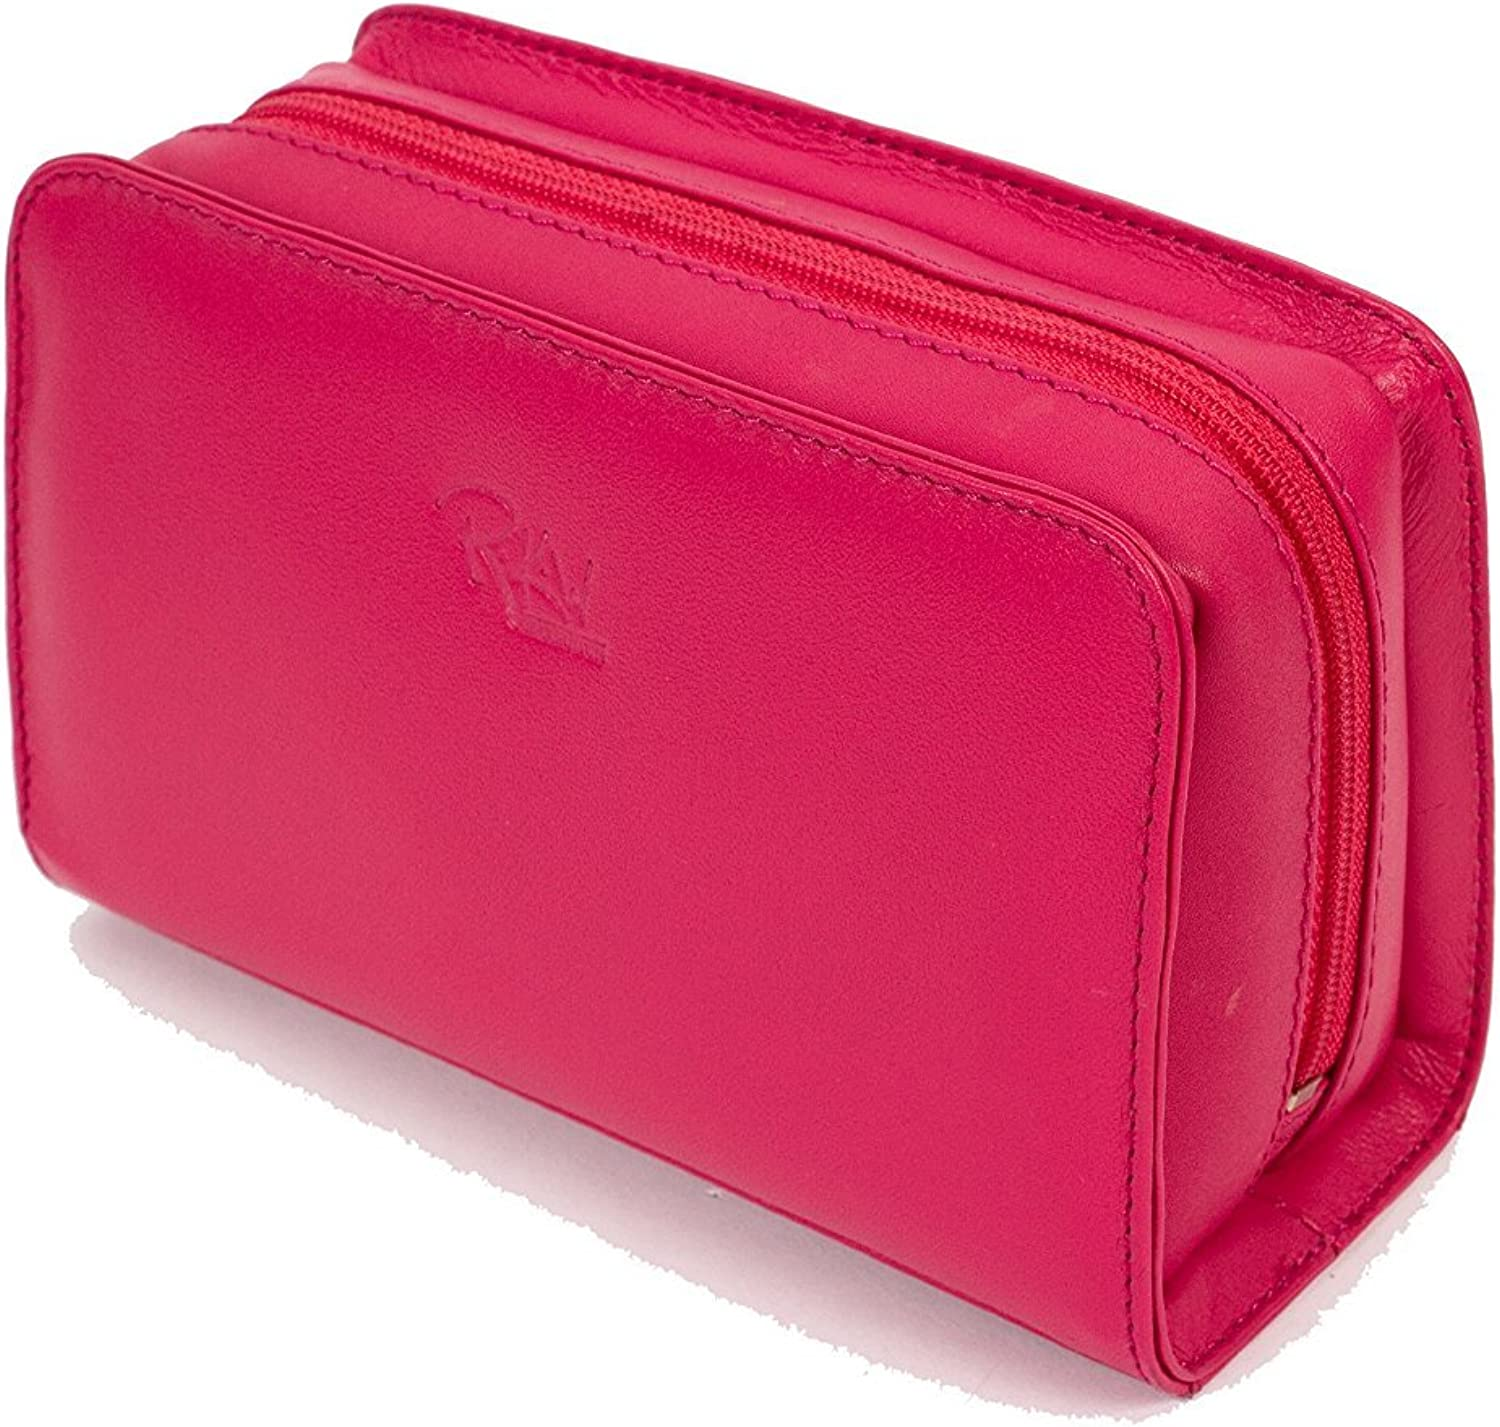 Cosmetic Bag- Challenge the NEW lowest price of Japan Hot Pink